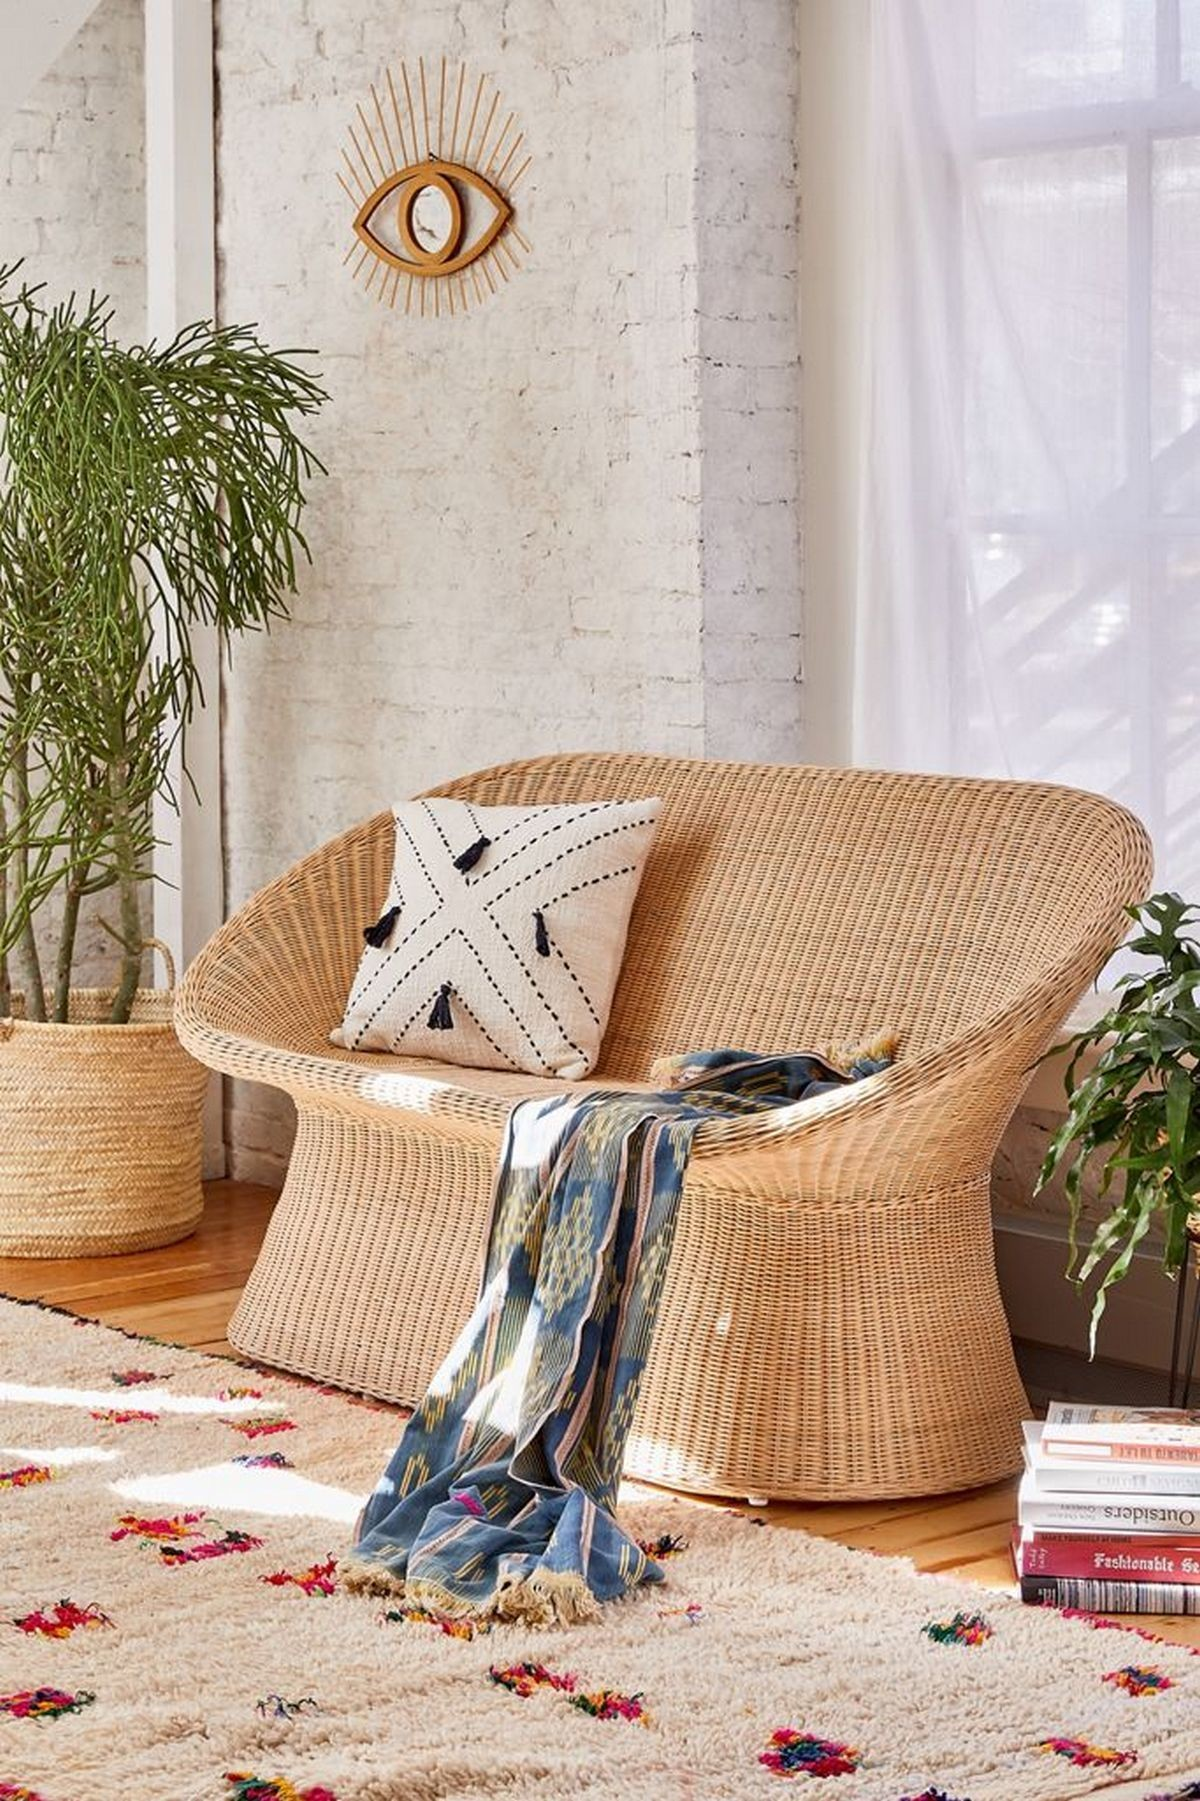 Wicker Furniture Ideas For Your Home In 2020